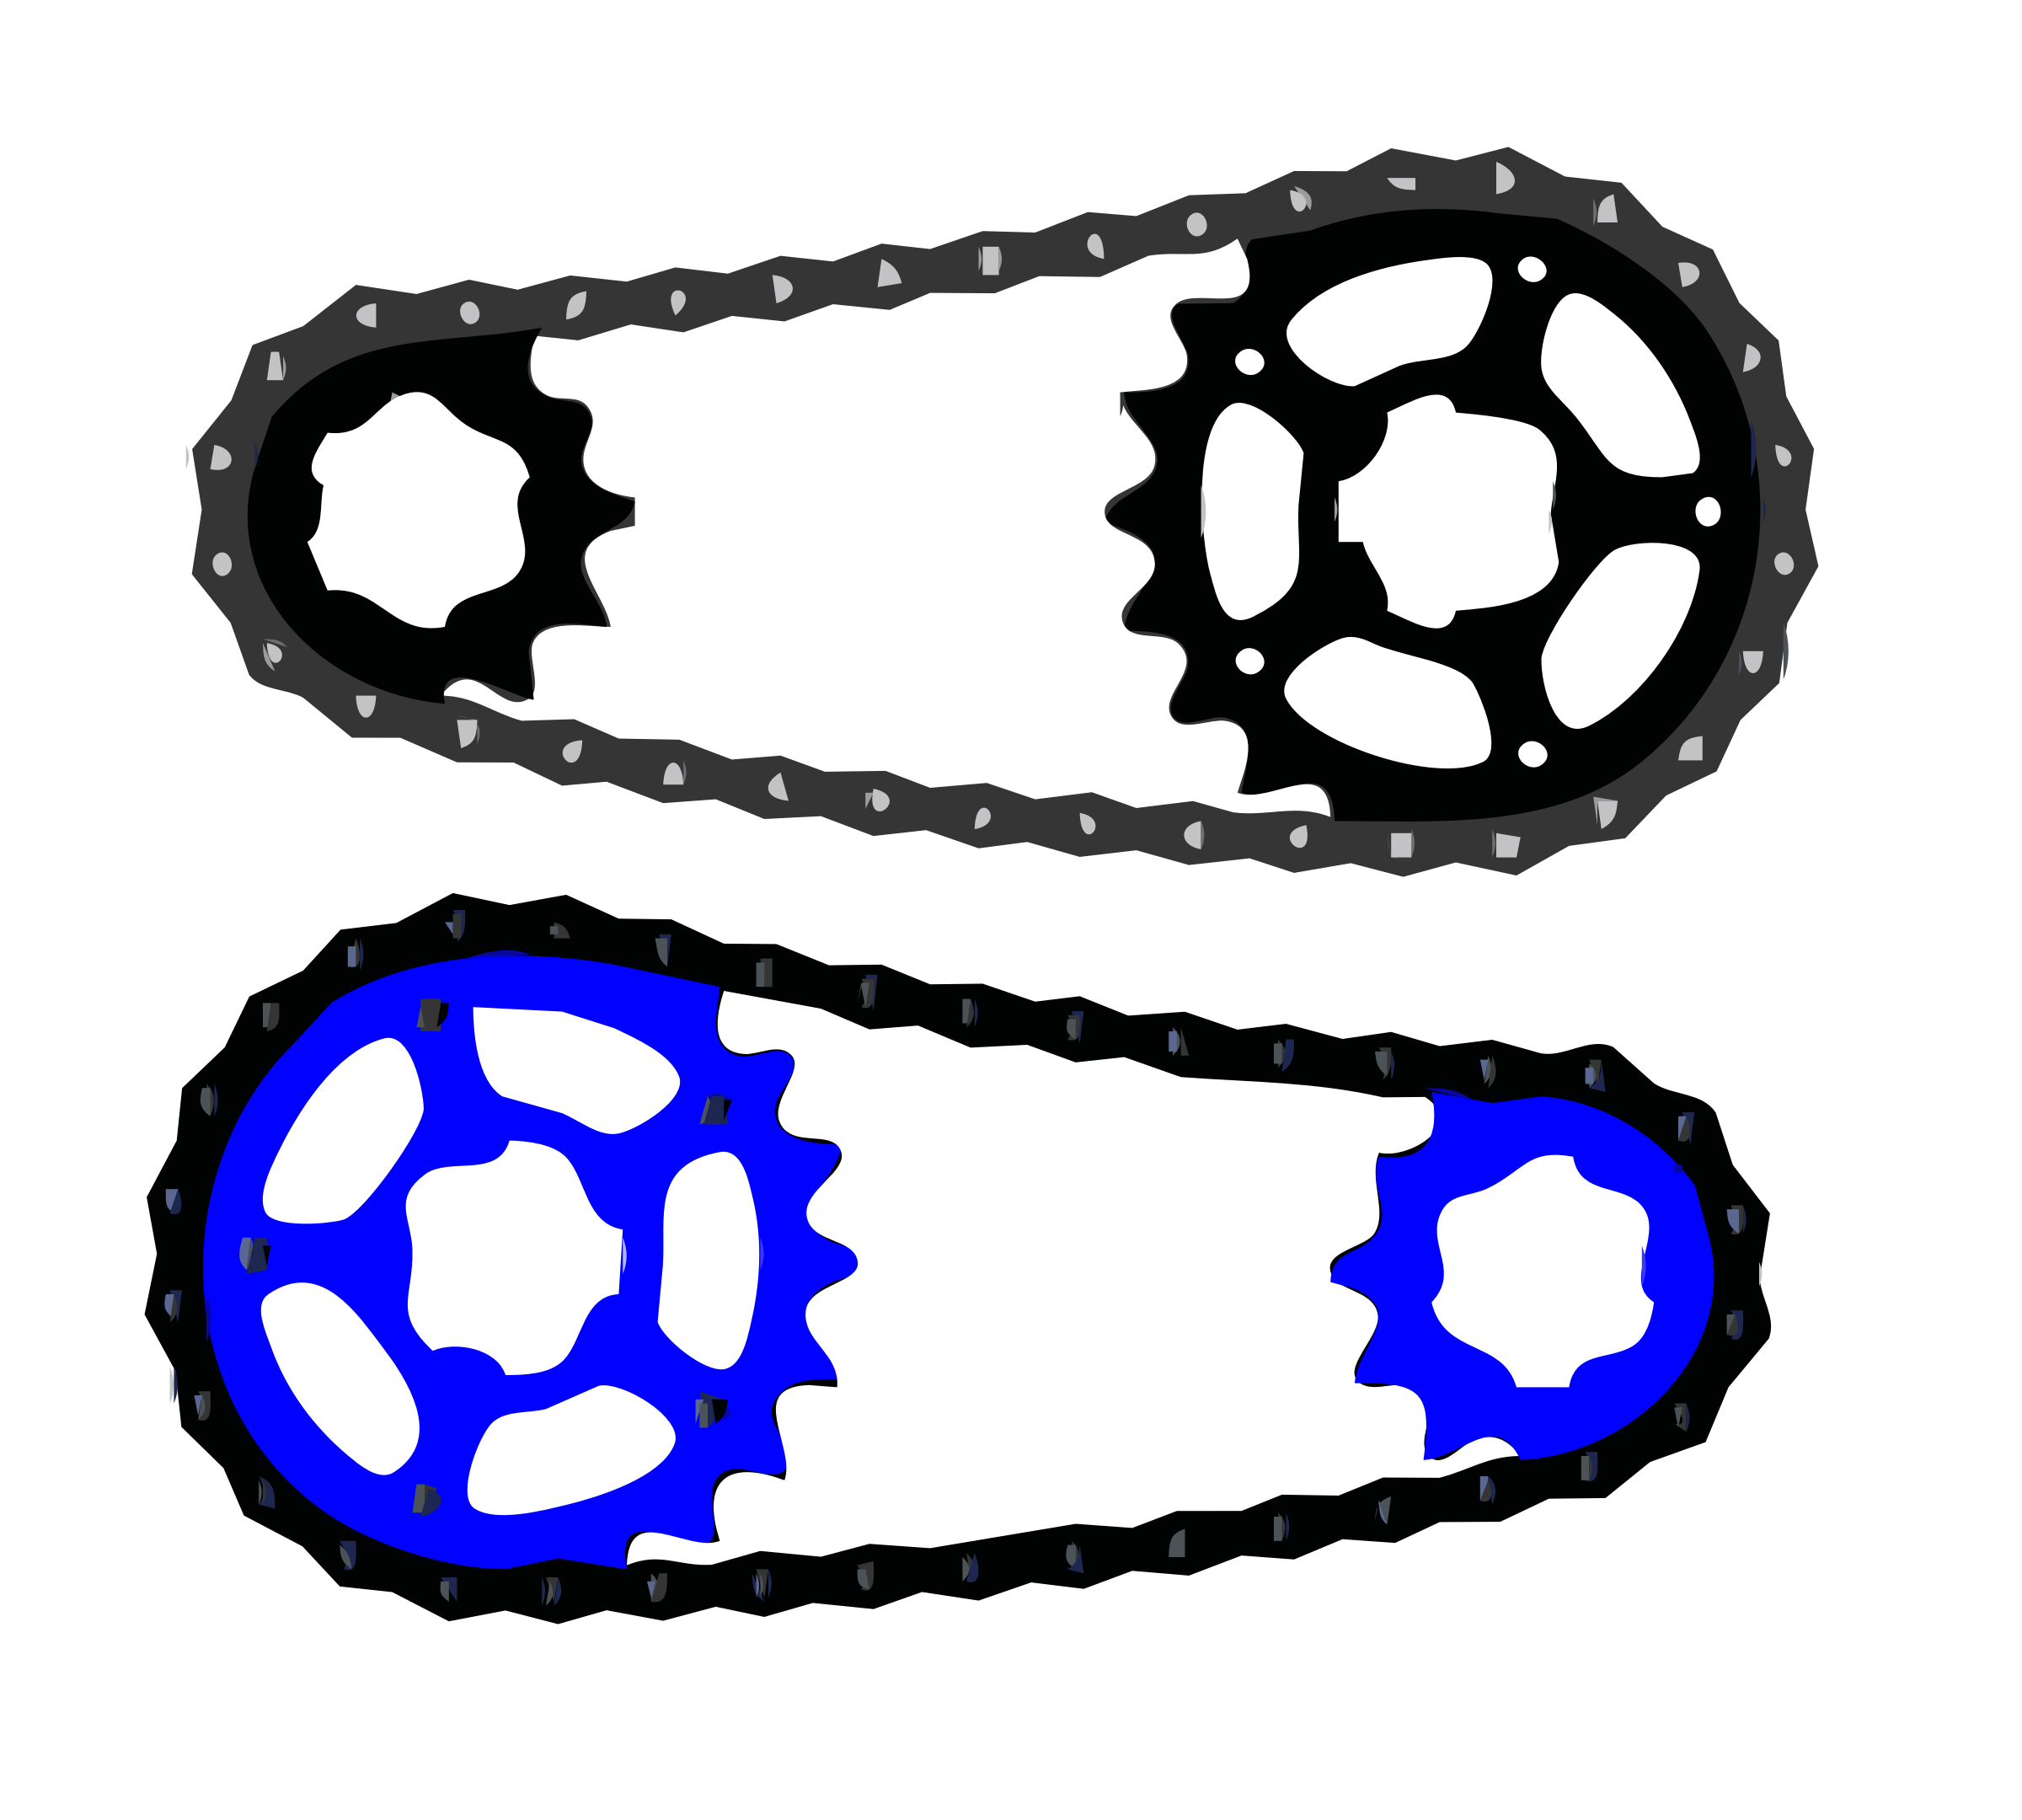 Bicycle chain vector by kingston123